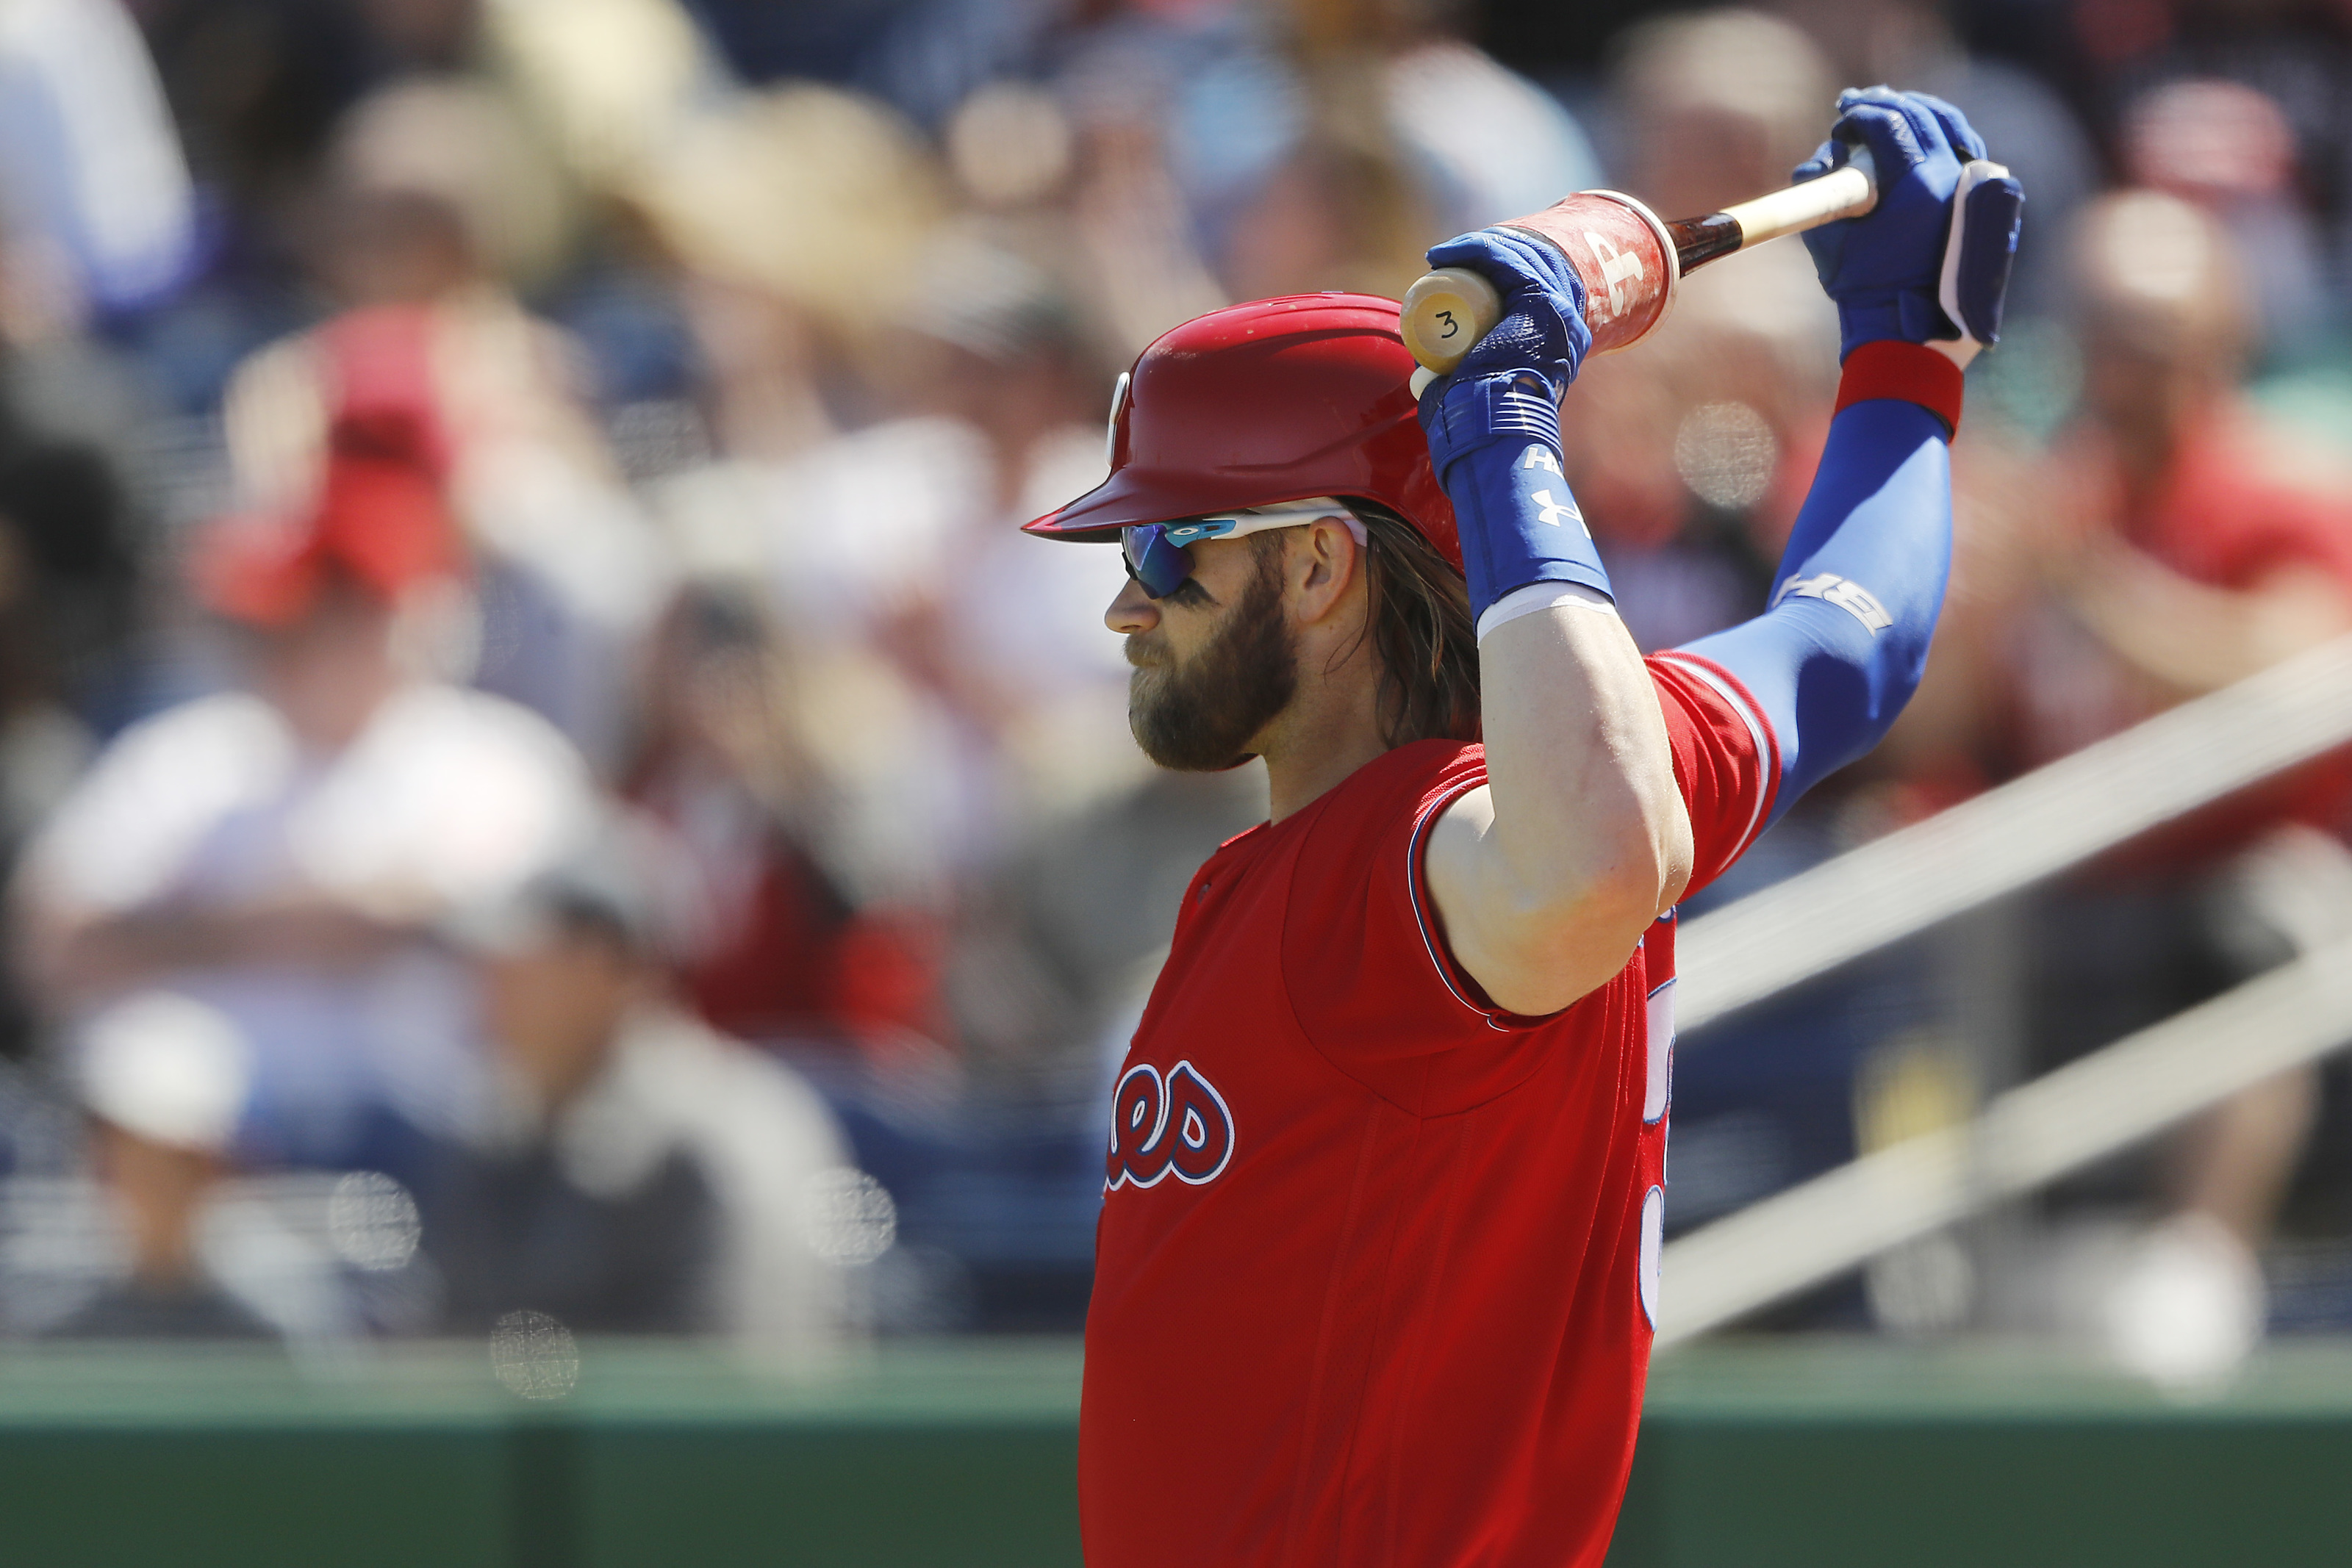 Phillies Bryce Harper reveals his all-time